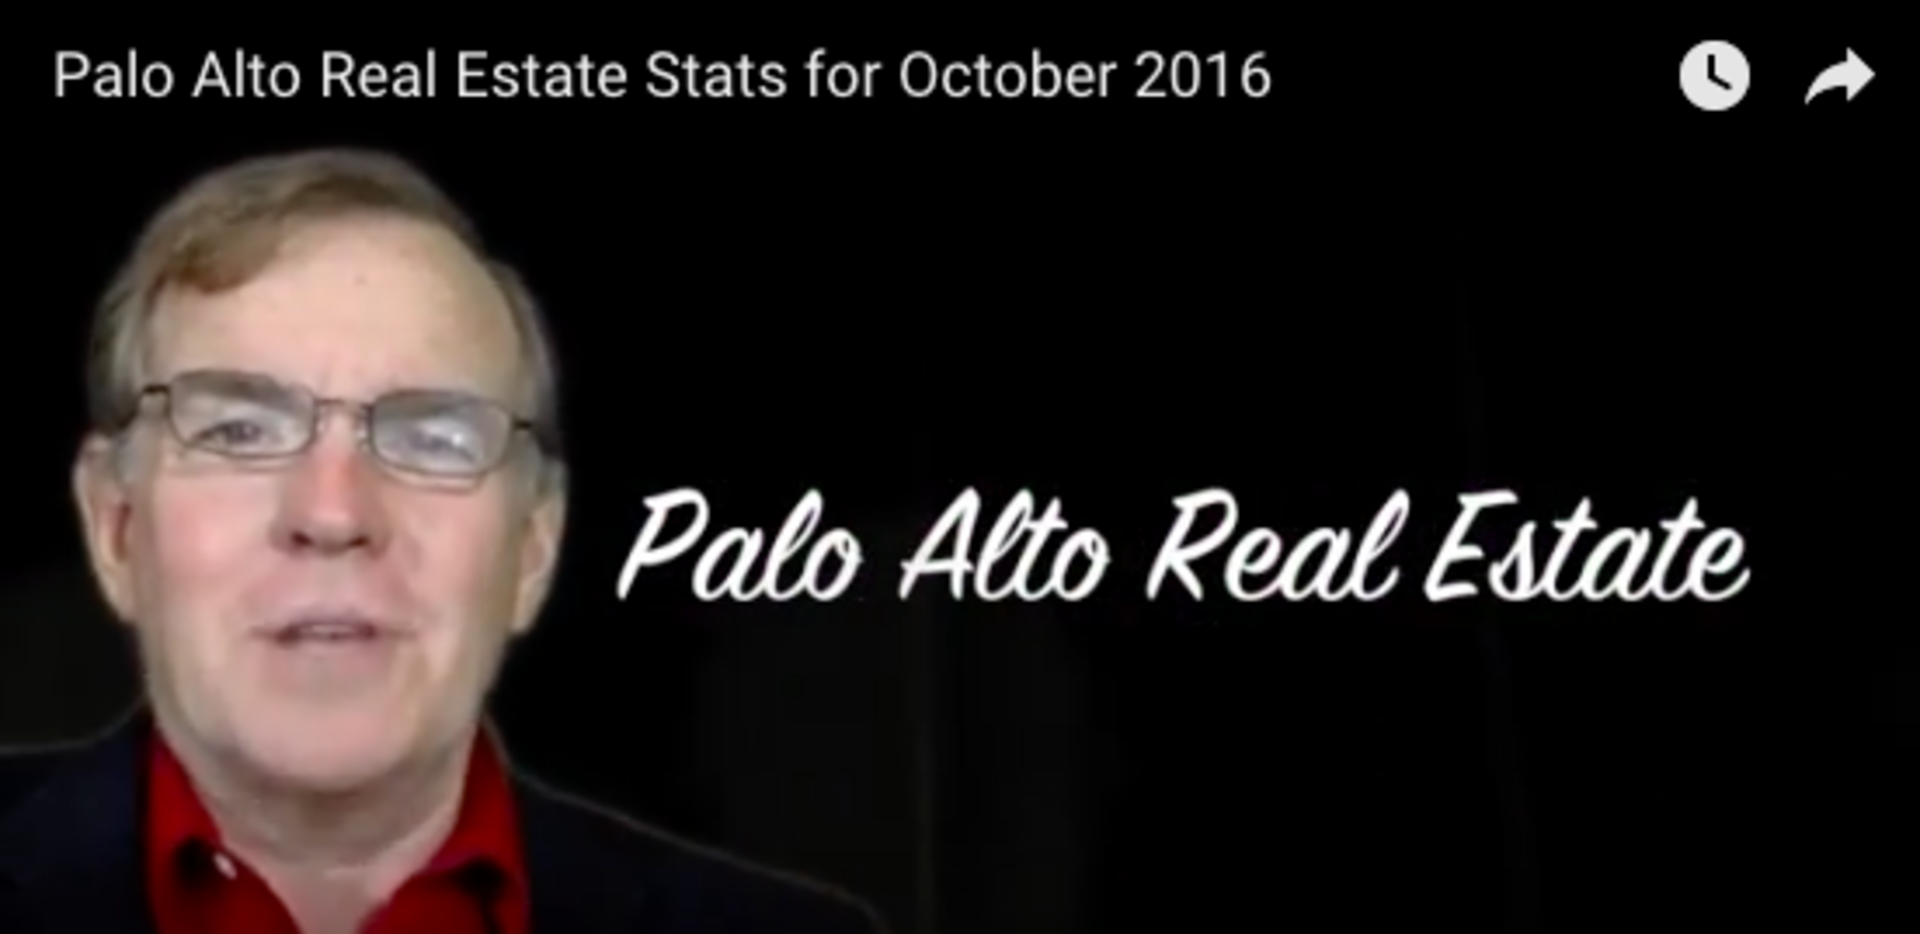 Palo Alto Market Stats October 2016